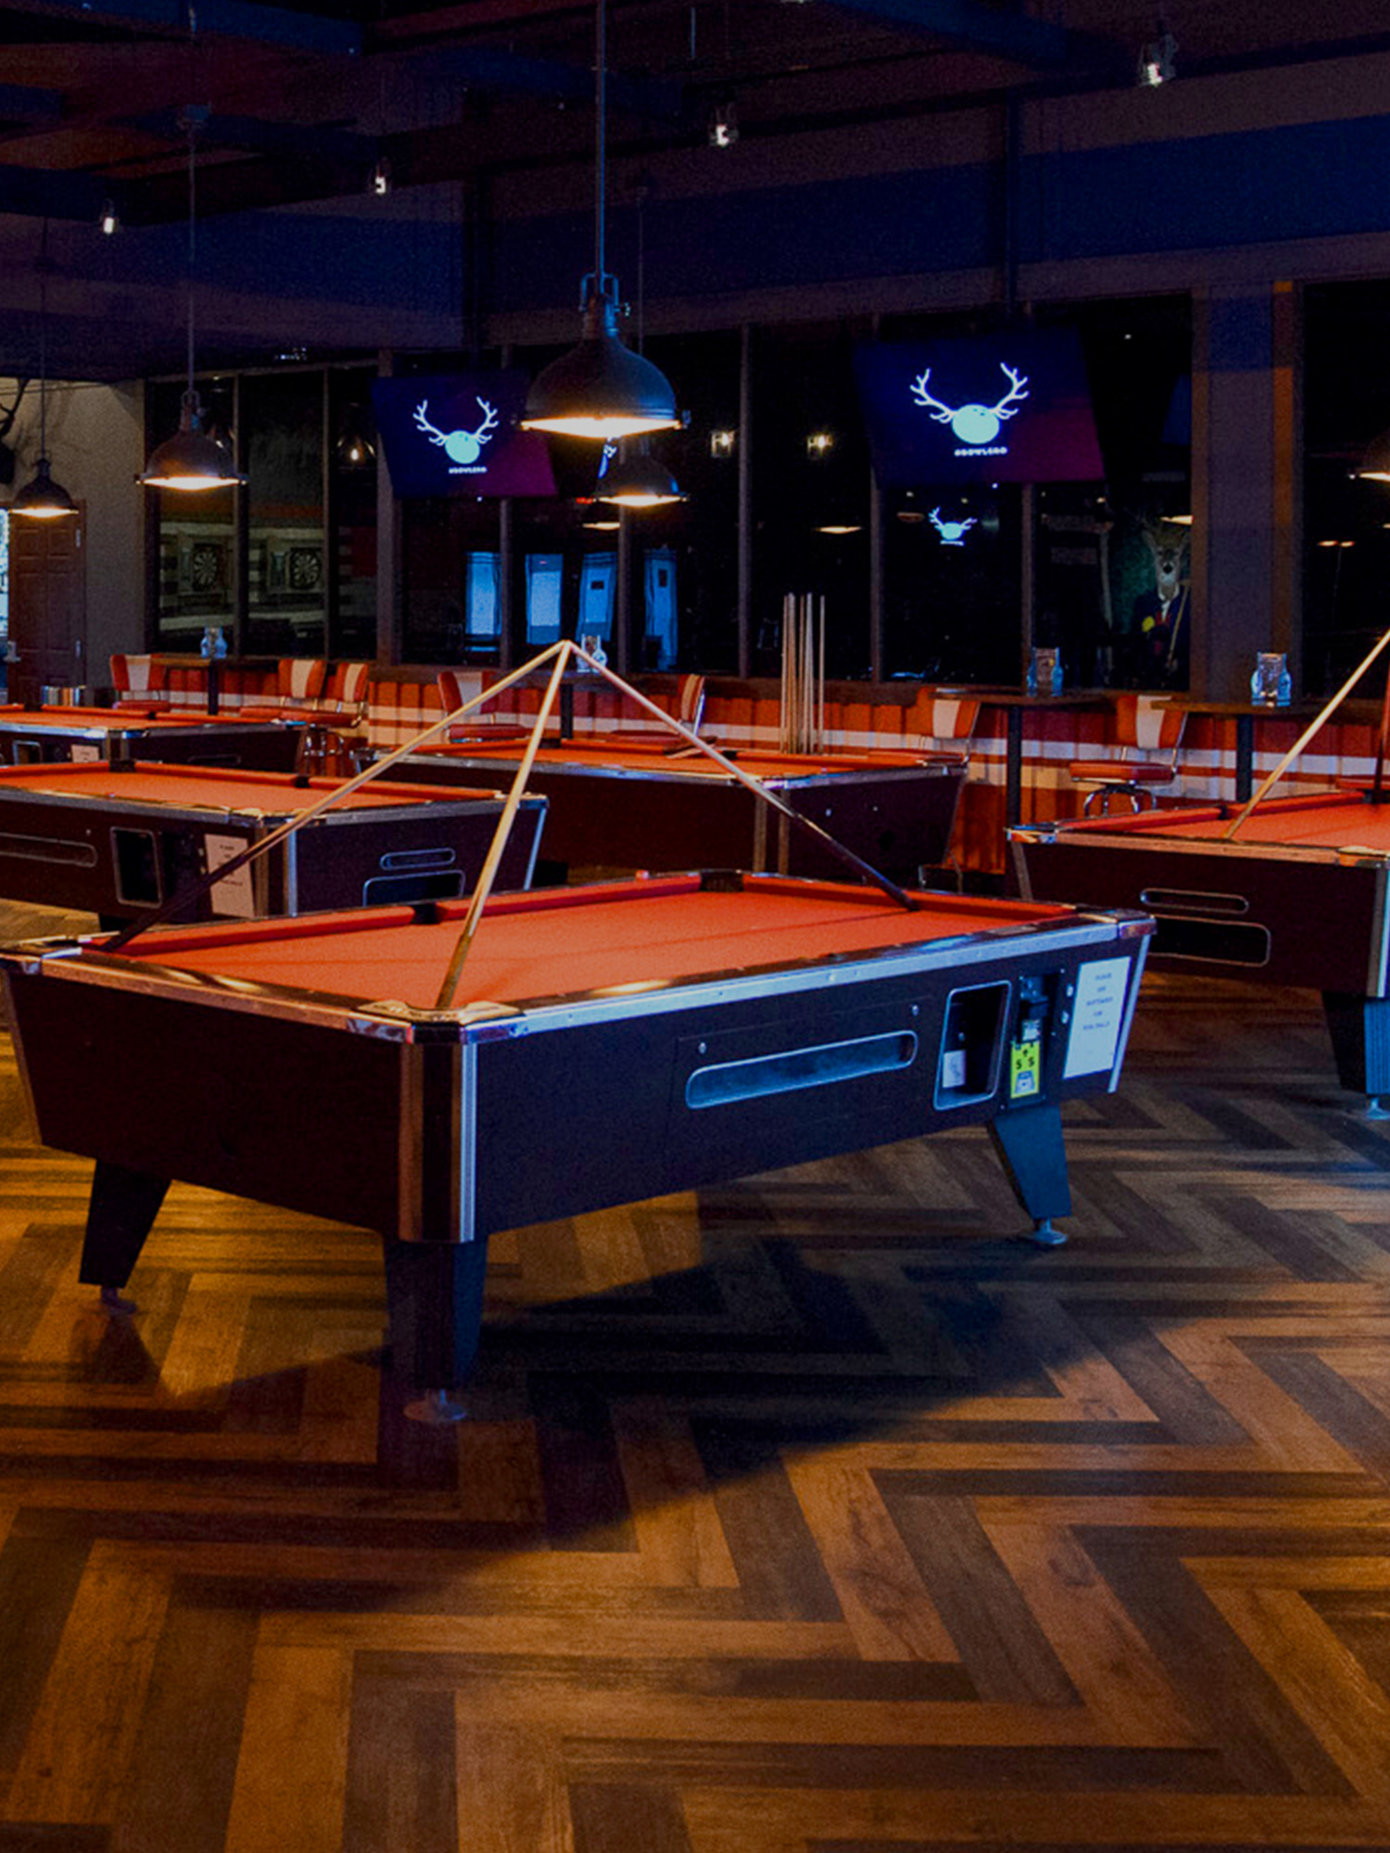 Multiple red billiards tables